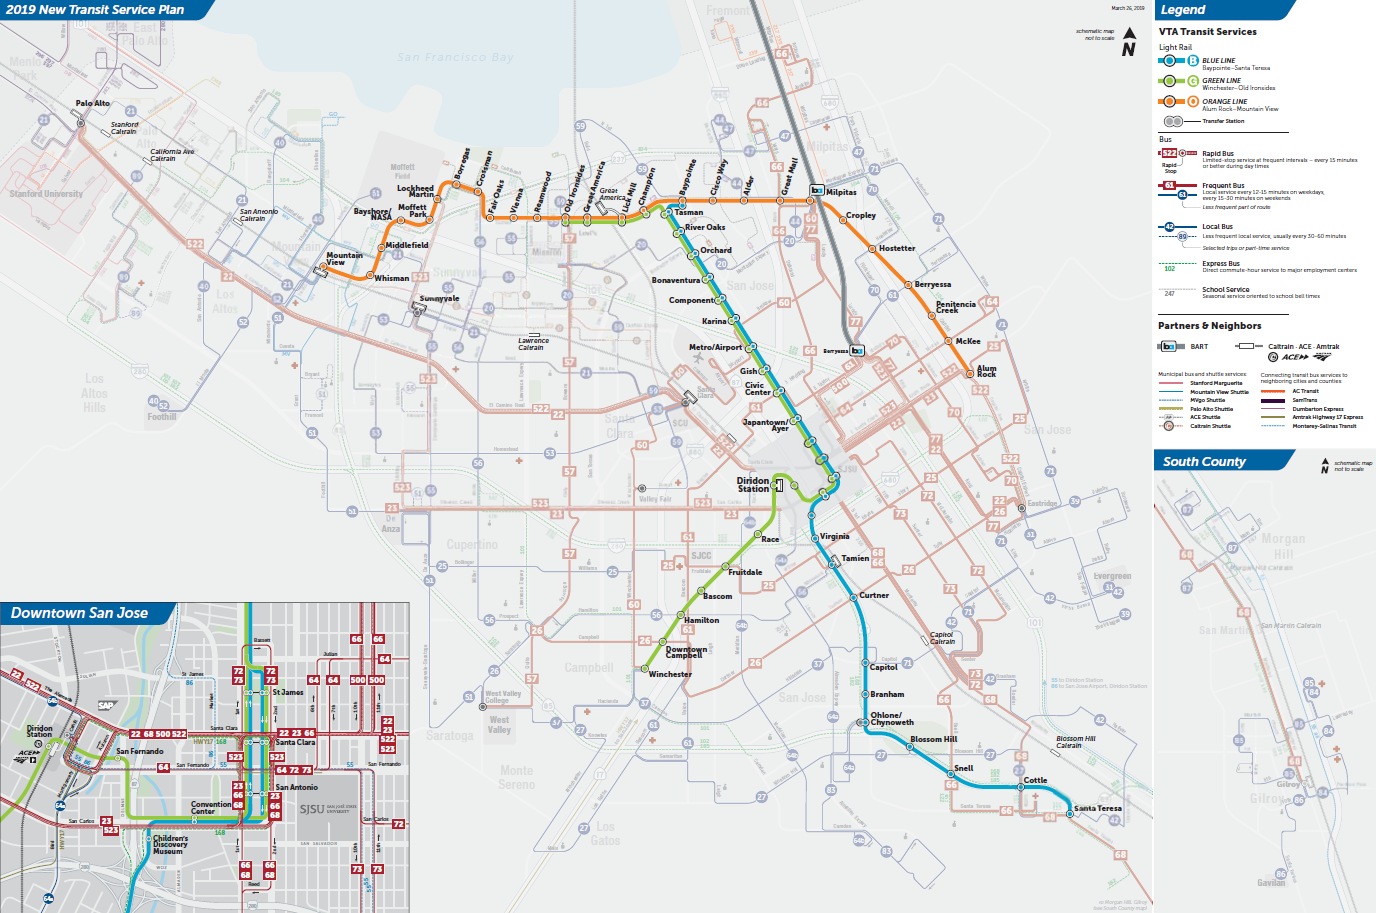 Mapa ng Light Rail sa Final na 2019 New Transit Service Plan ng VTA  (PDF)